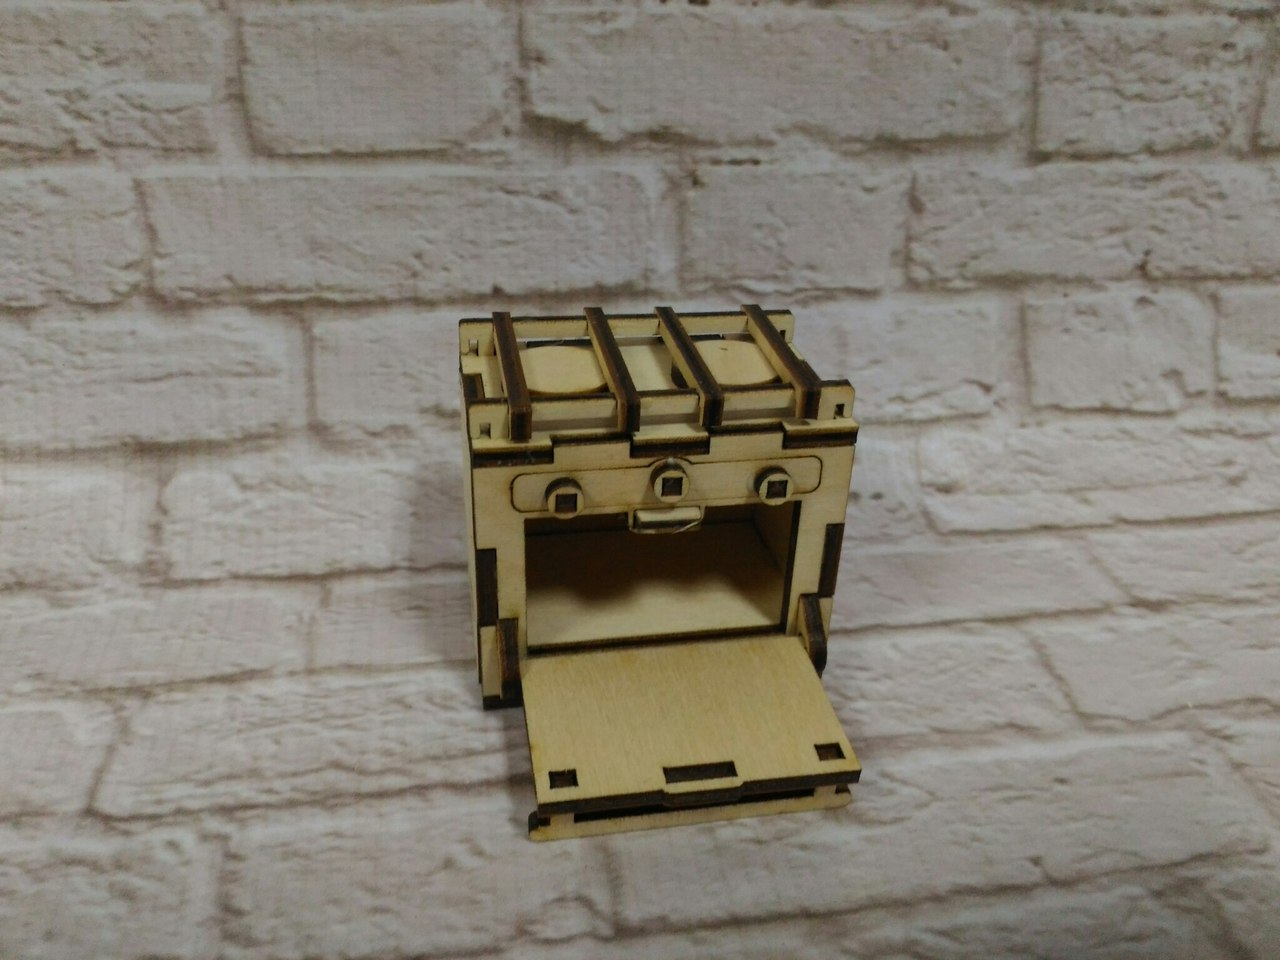 Laser Cut Dollhouse Kitchen Oven Stove Miniature Dollhouse Furniture 3mm Free CDR Vectors Art